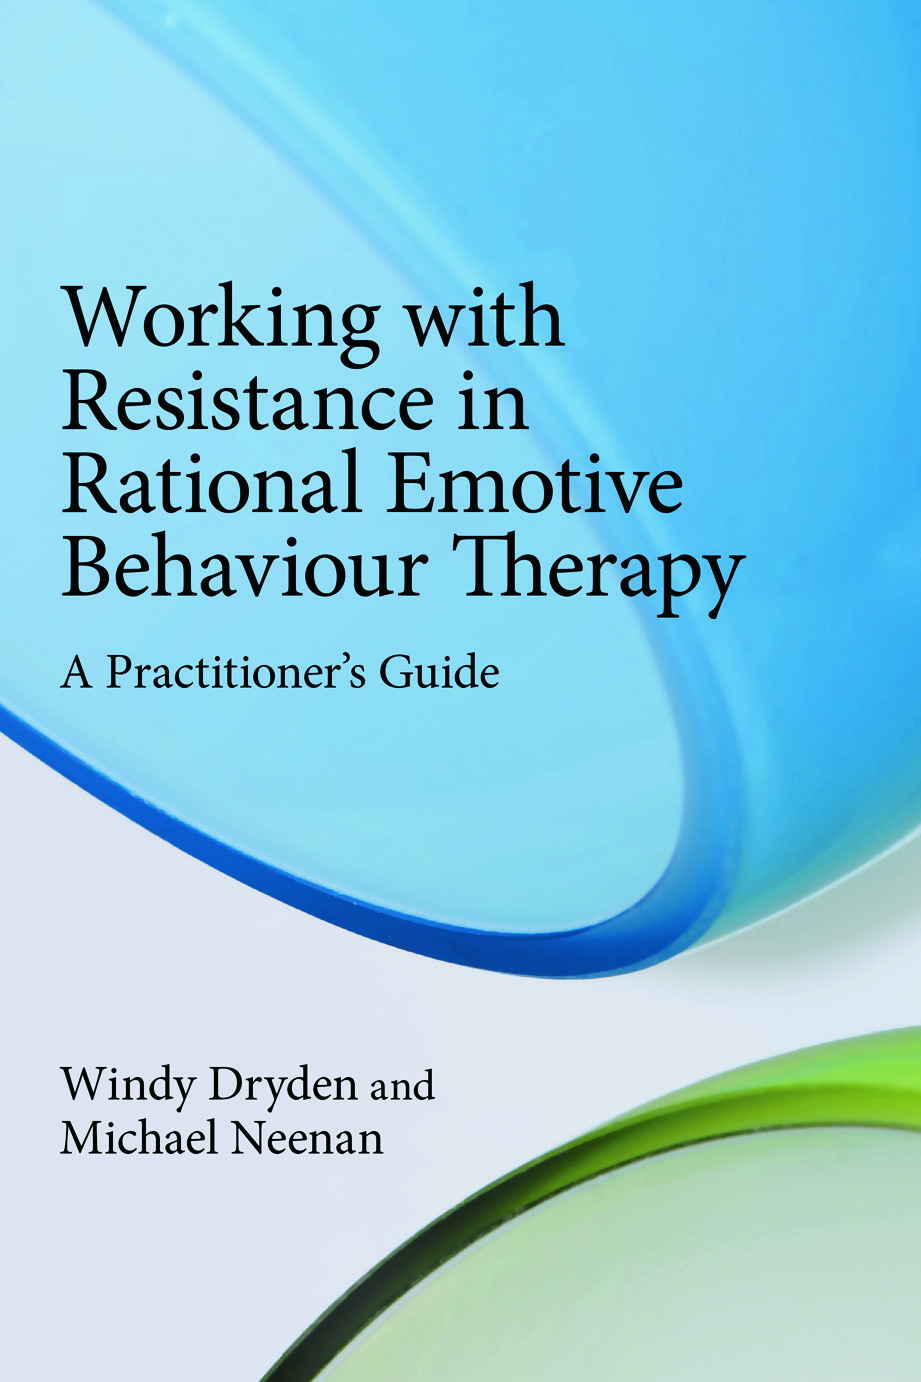 Working with Resistance in Rational Emotive Behaviour Therapy: A Practitioner's Guide (Paperback) book cover